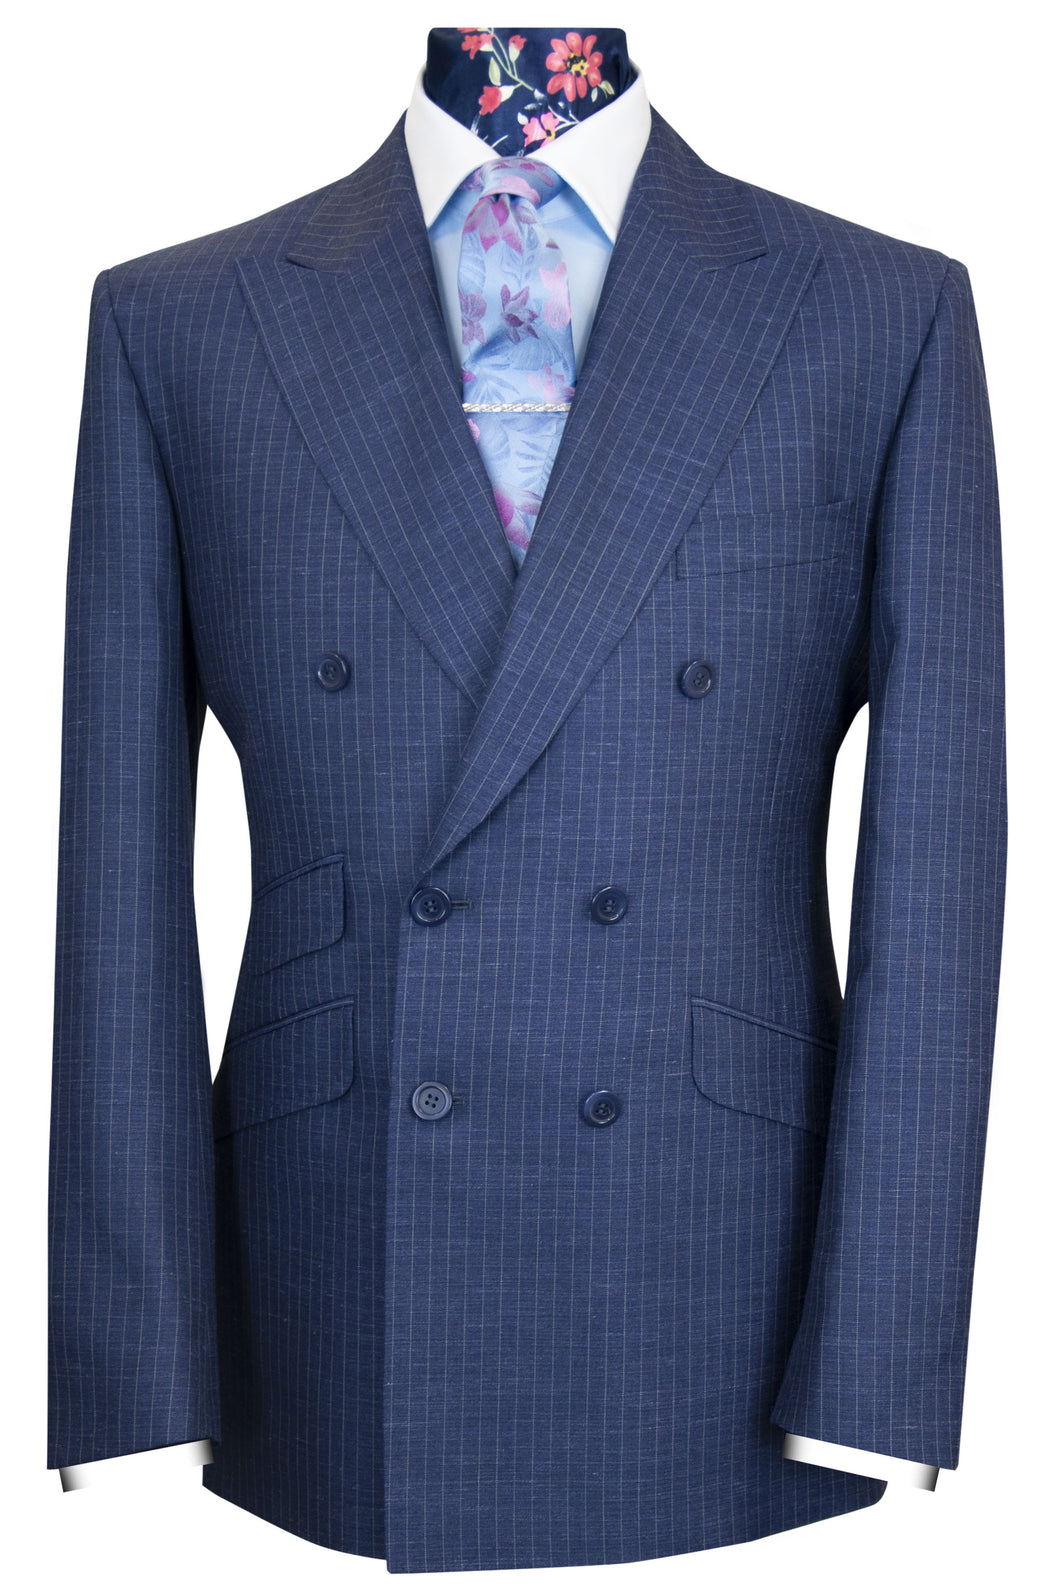 The Allerton Classic Navy Pinstripe Suit